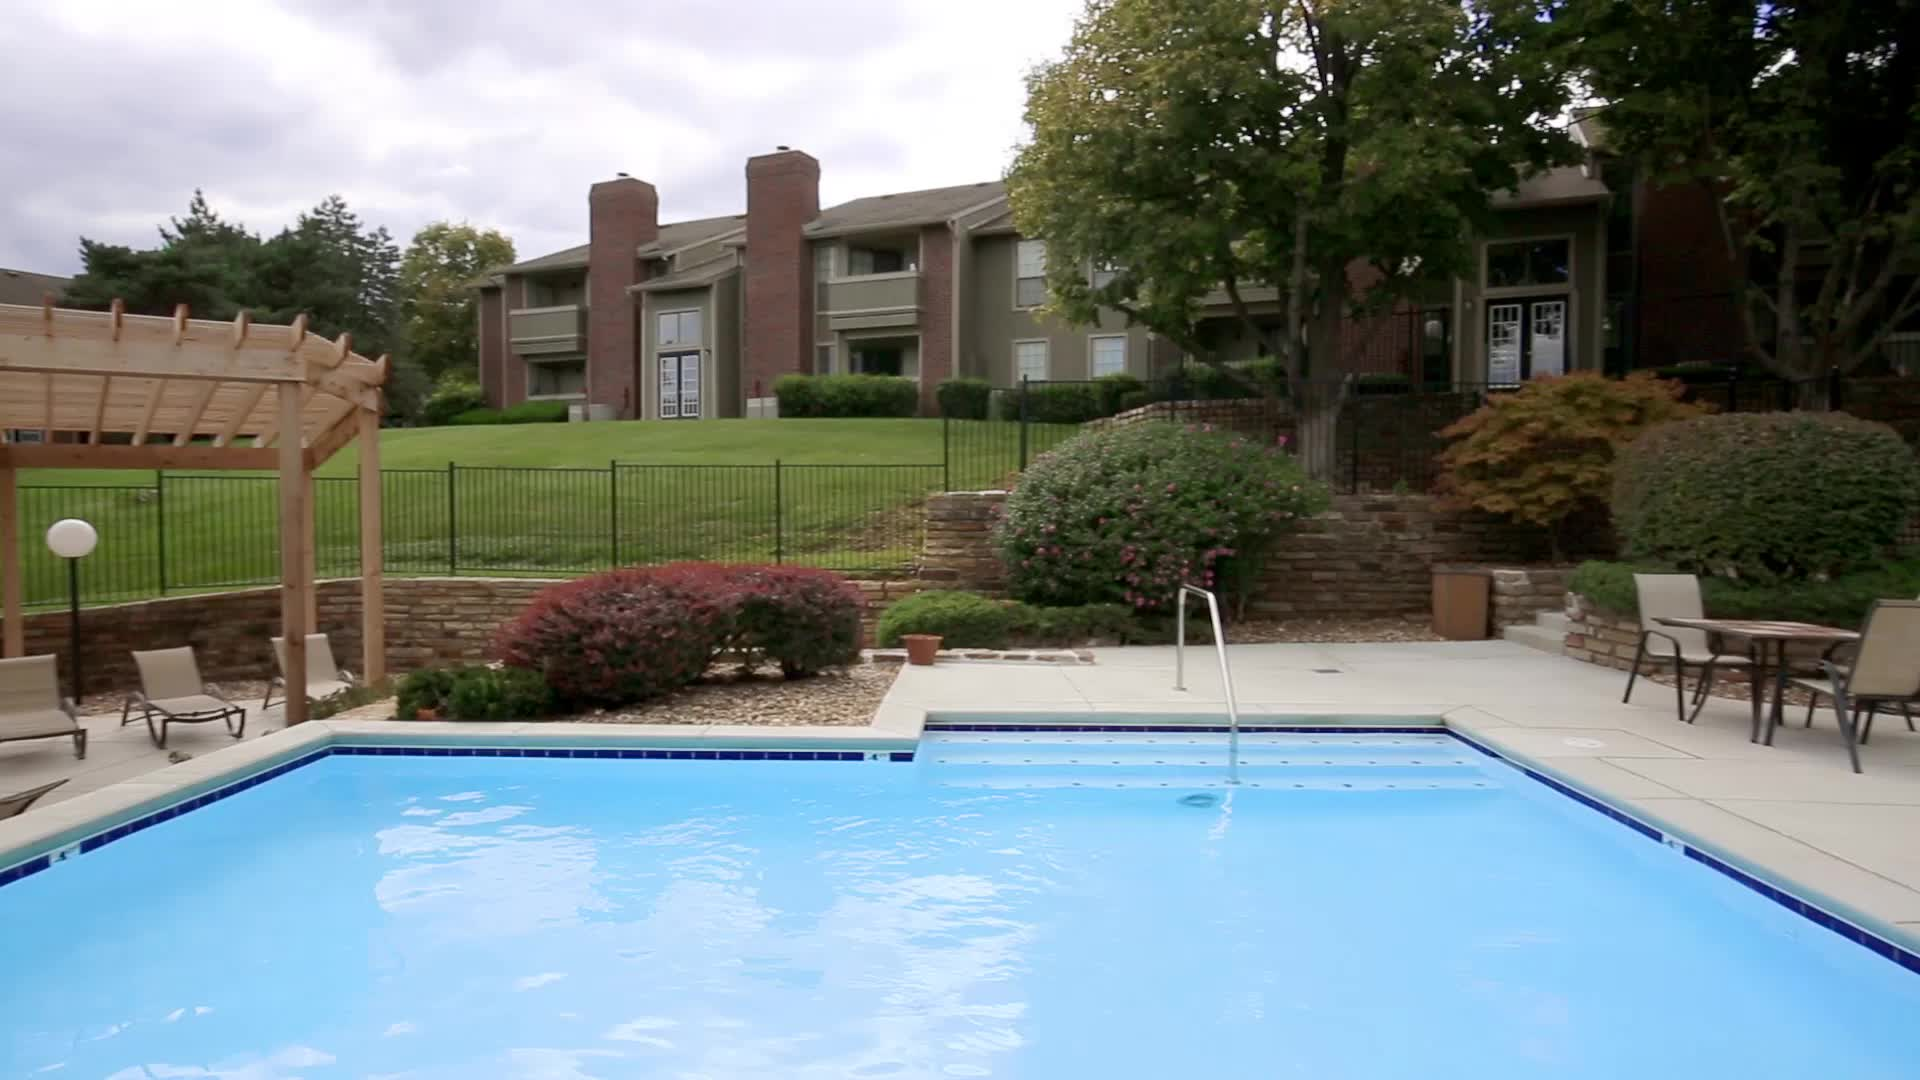 SPARKLING SWIMMING POOL ... & Coventry Oaks - Photo Gallery